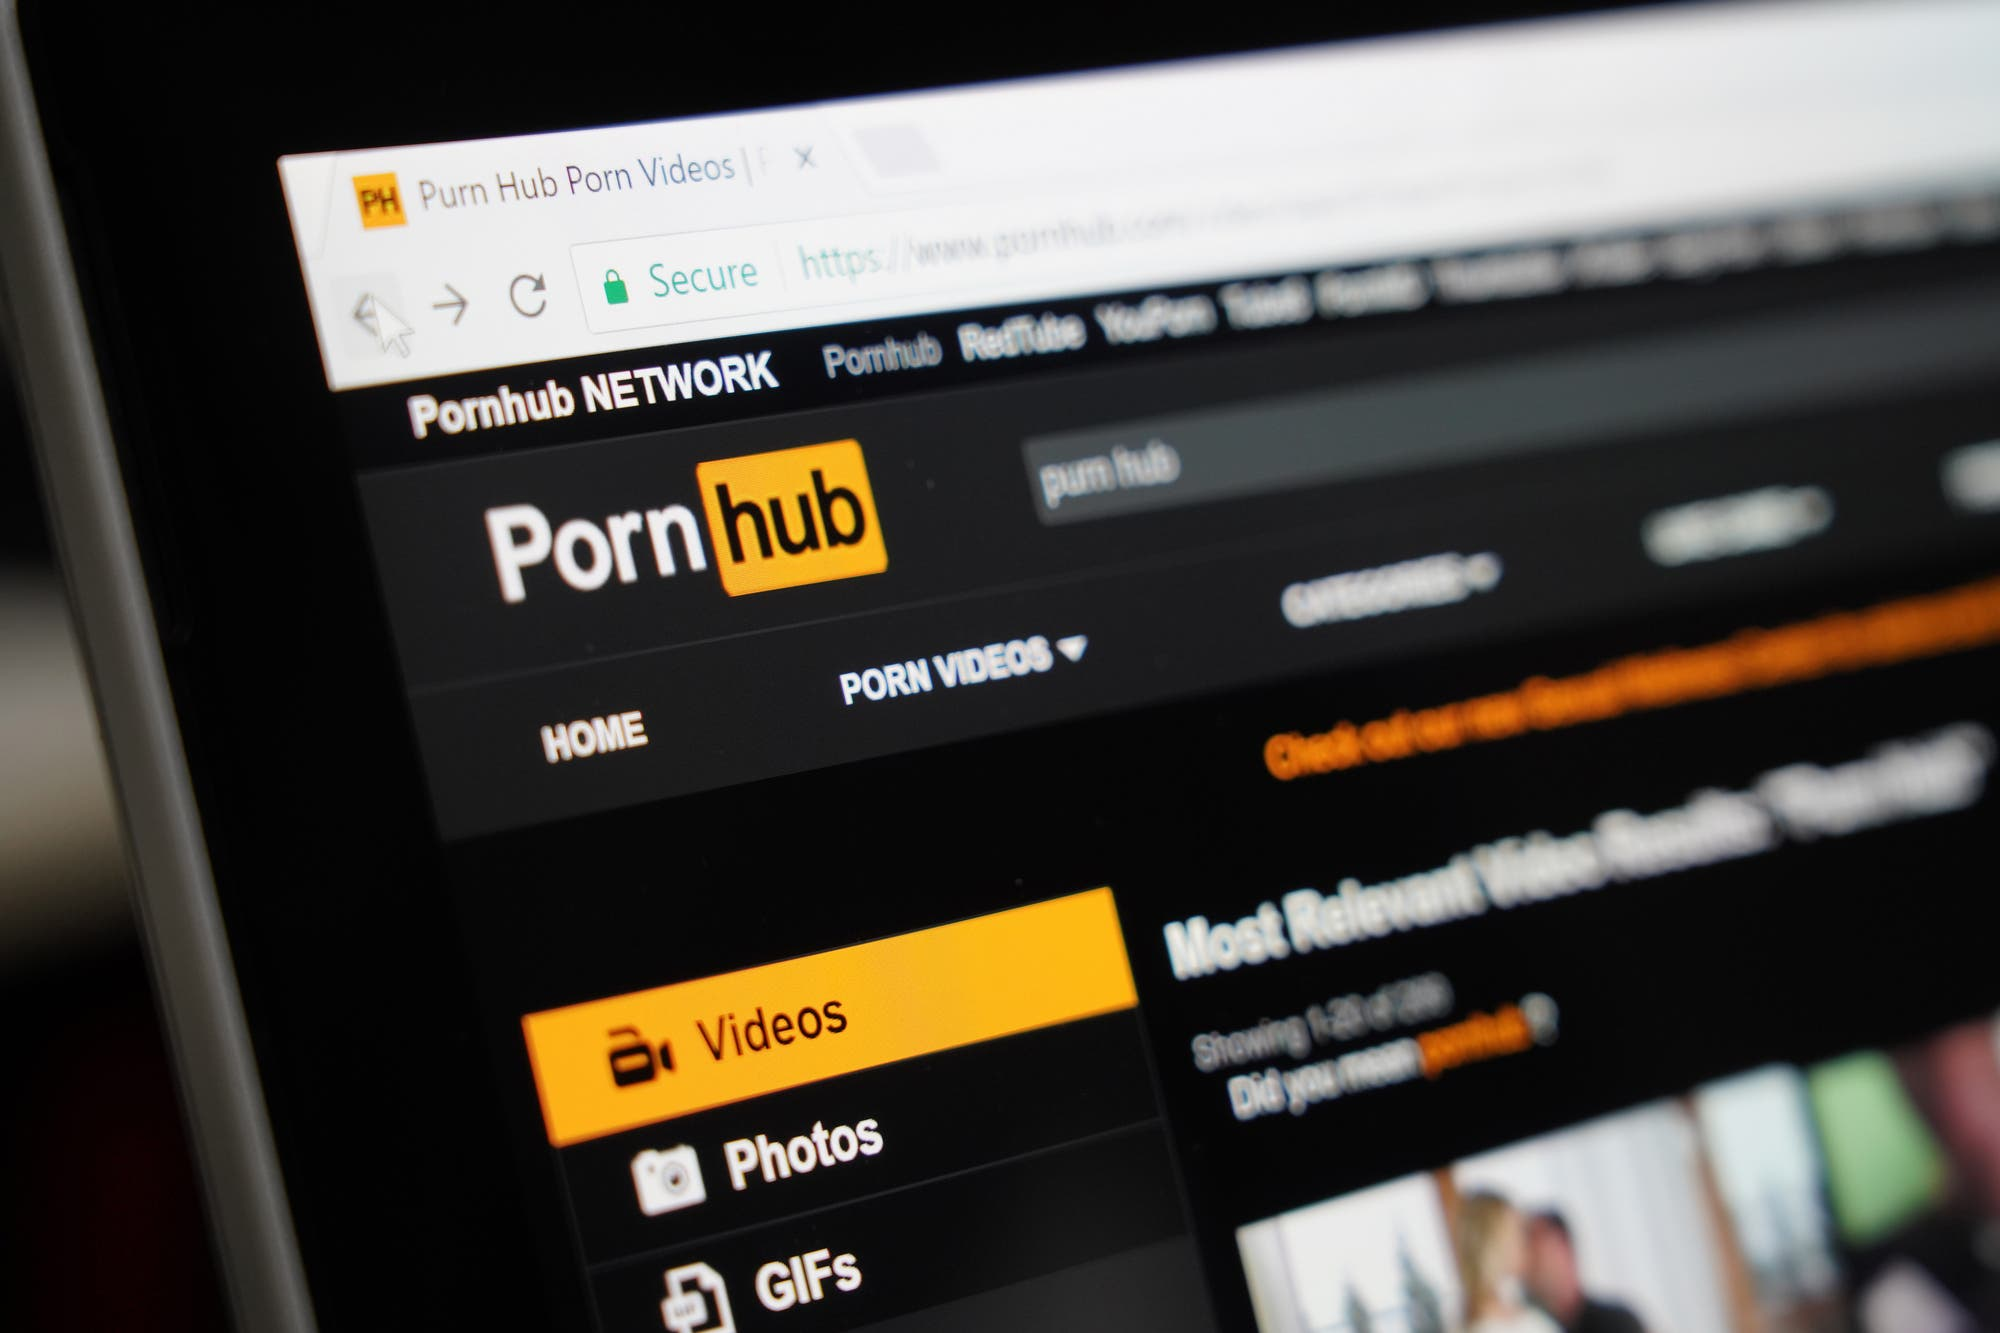 Porn in quarantine: more videos are seen at dawn and at noon according to PornHub